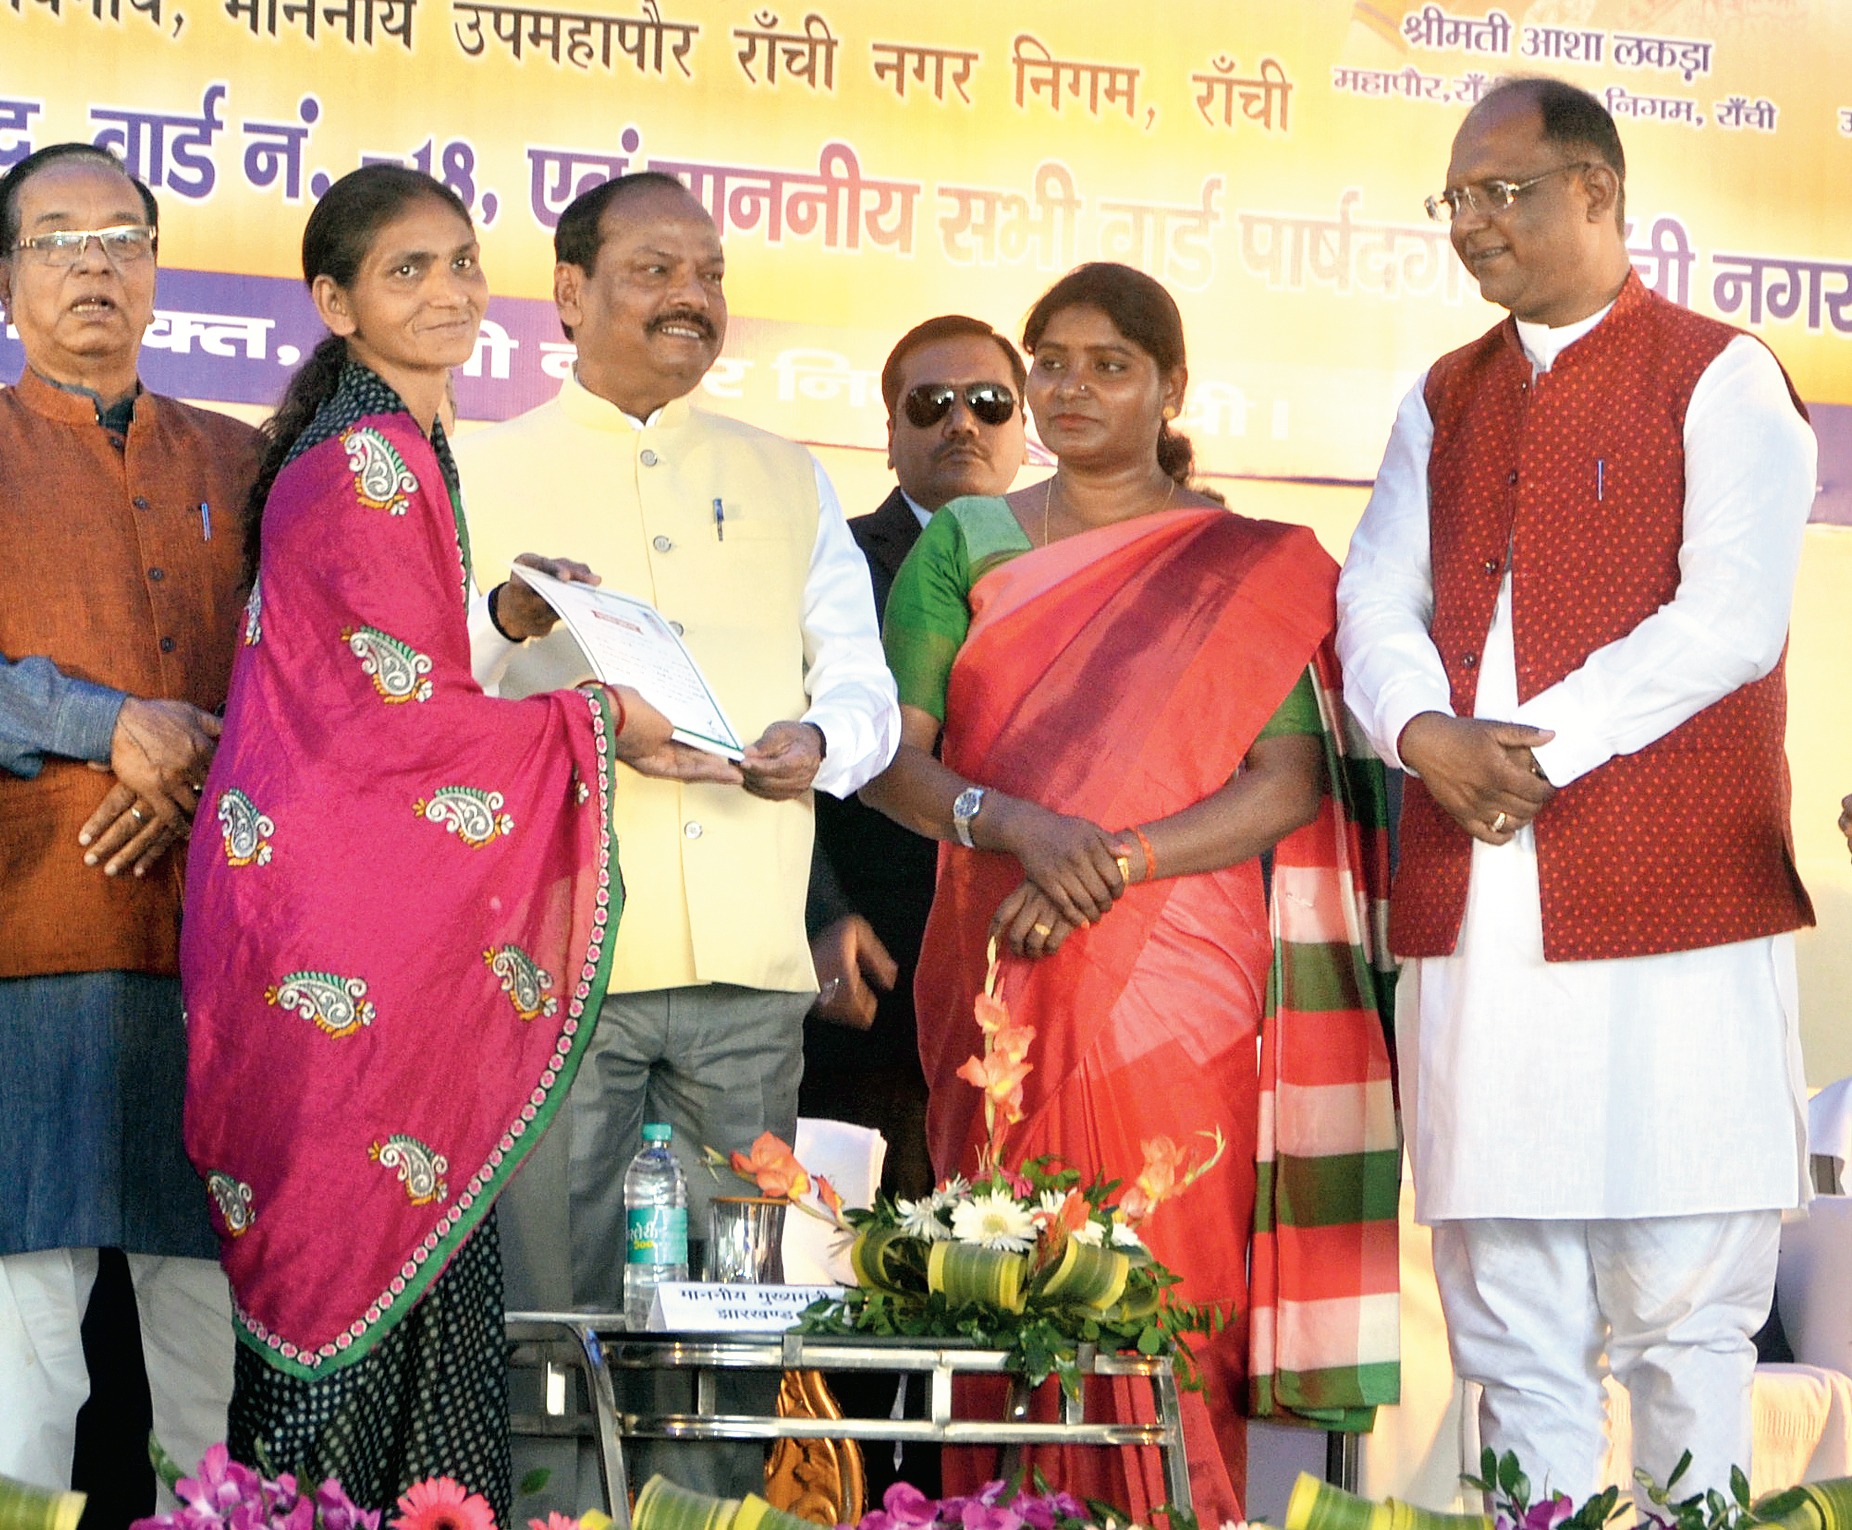 Shop till you drop: Chief minister Raghubar Das distributes allotment certificates to vendors after inaugurating the vendor market on Jaipal Singh Stadium premises in Ranchi on Friday. Ranchi MP Ram Tahal Choudhary, mayor Asha Lakra and her deputy Sanjeev Vijayvargia were also present.